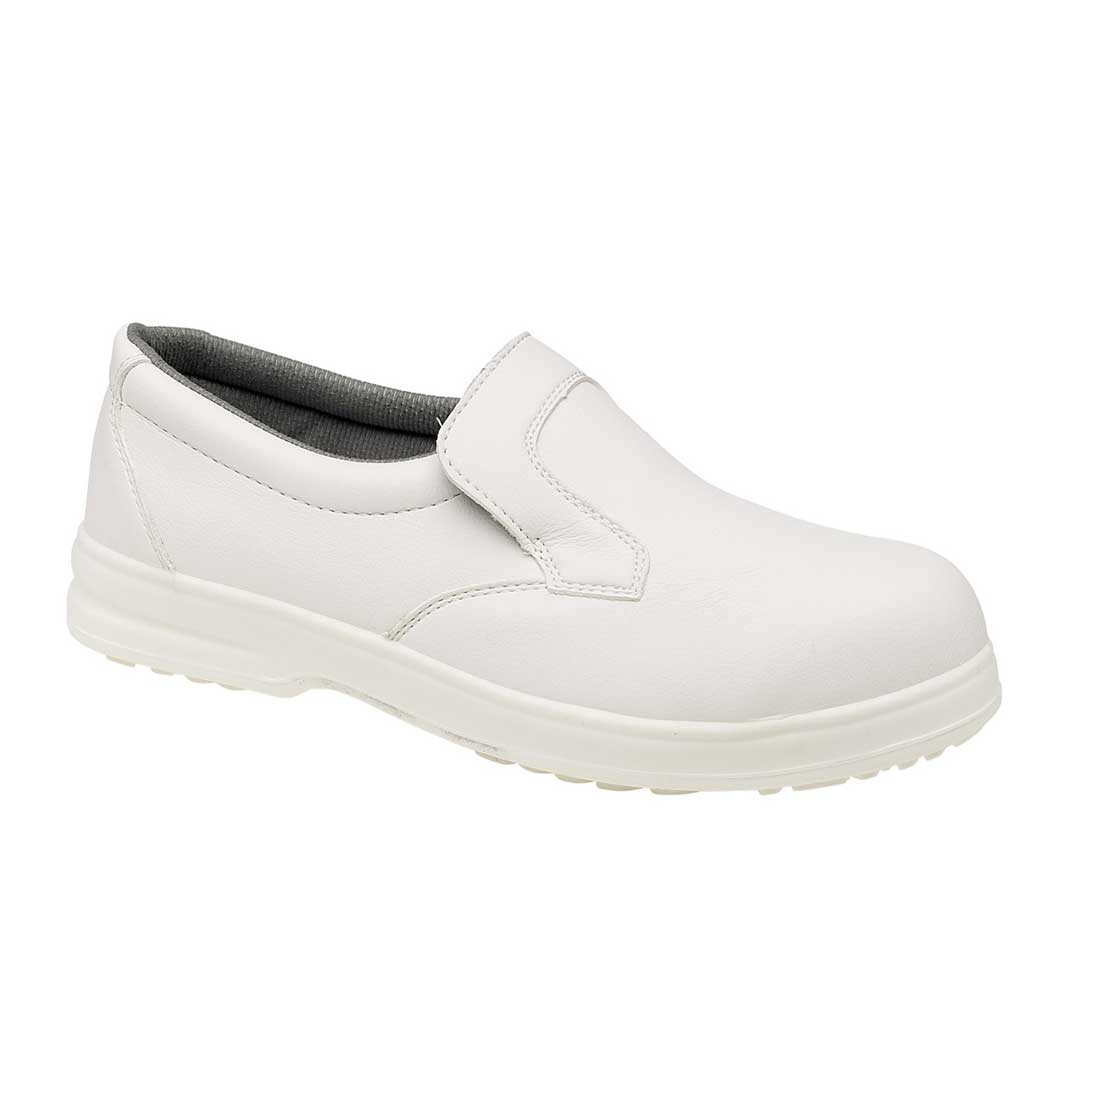 kitchen safety shoes for women water dispenser catering and machine washable white slip on unisex